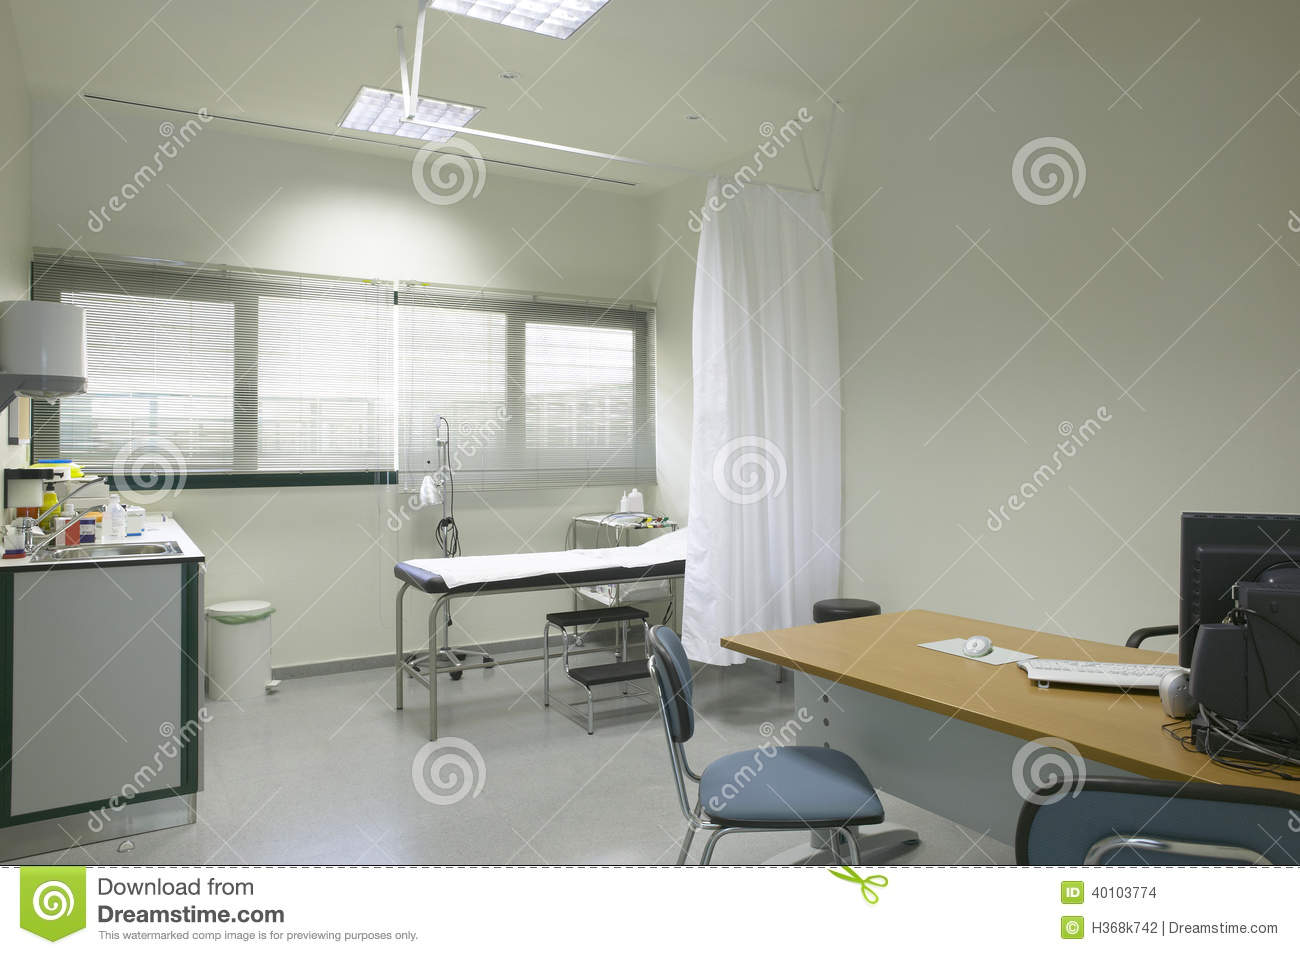 Doctor Room Interior With Equipment And Furniture Stock Photo Image 40103774